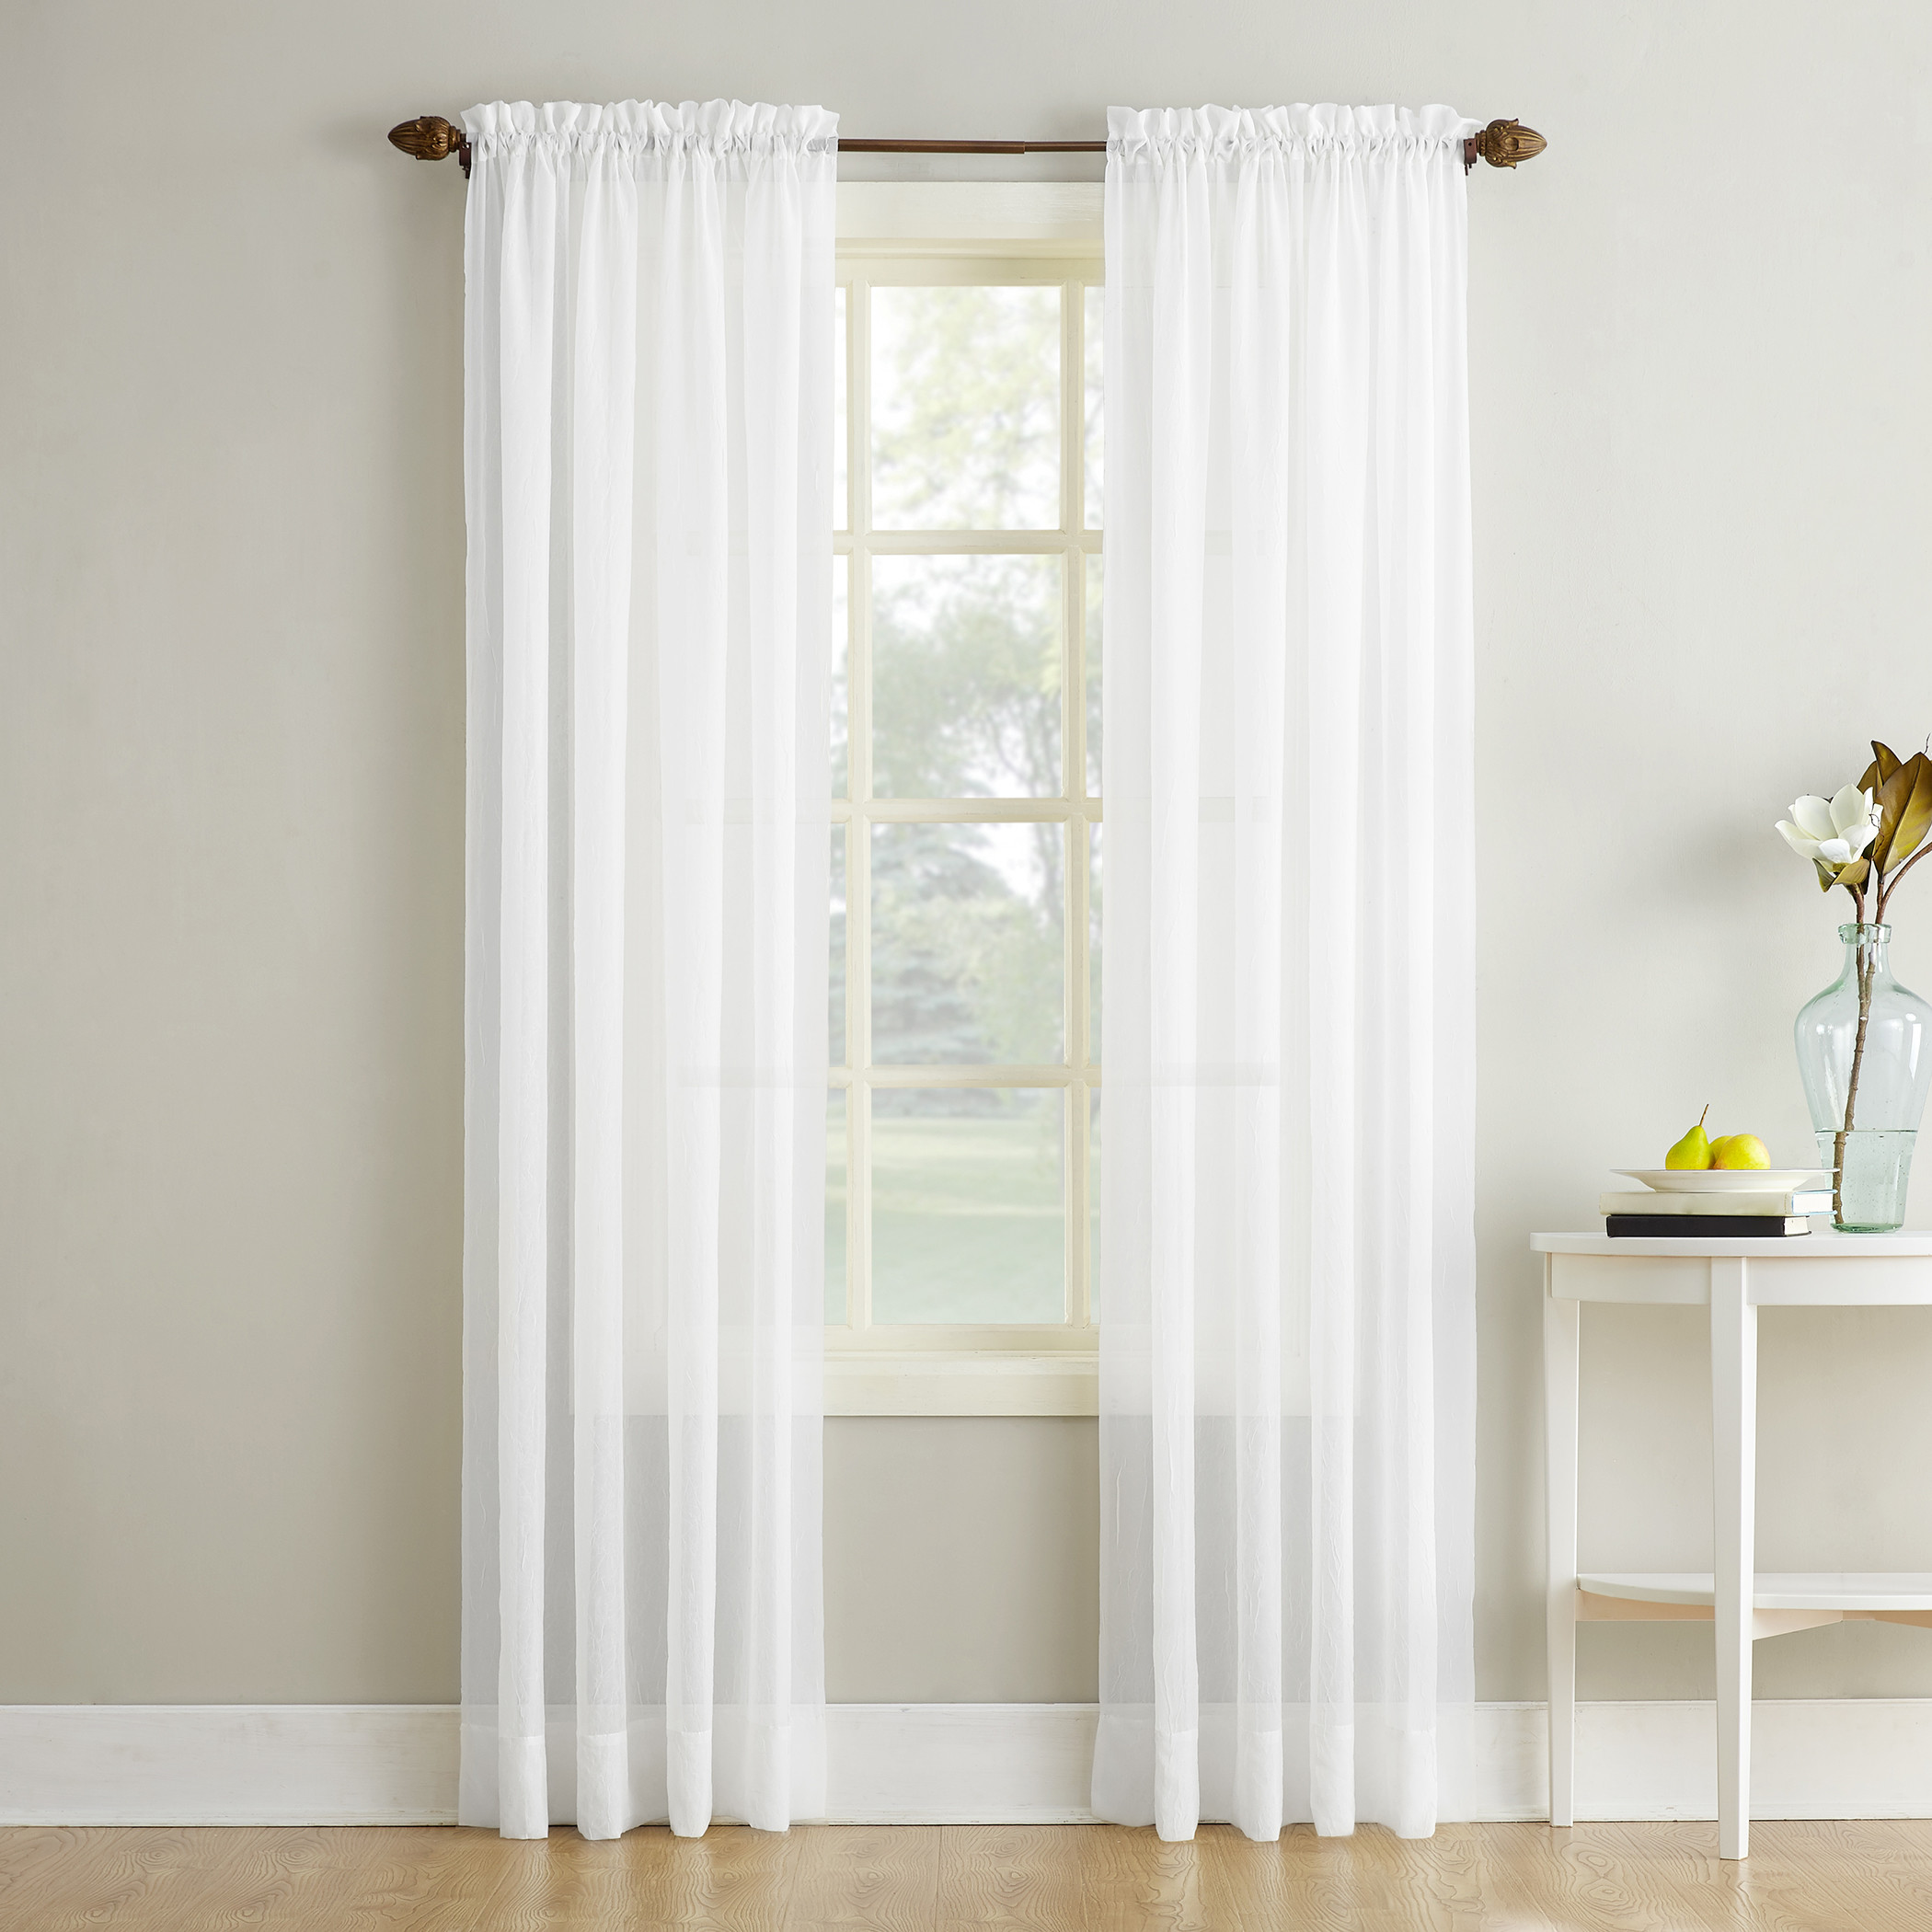 No. 918 Erica Crushed Sheer Voile Rod Pocket Curtain Panel